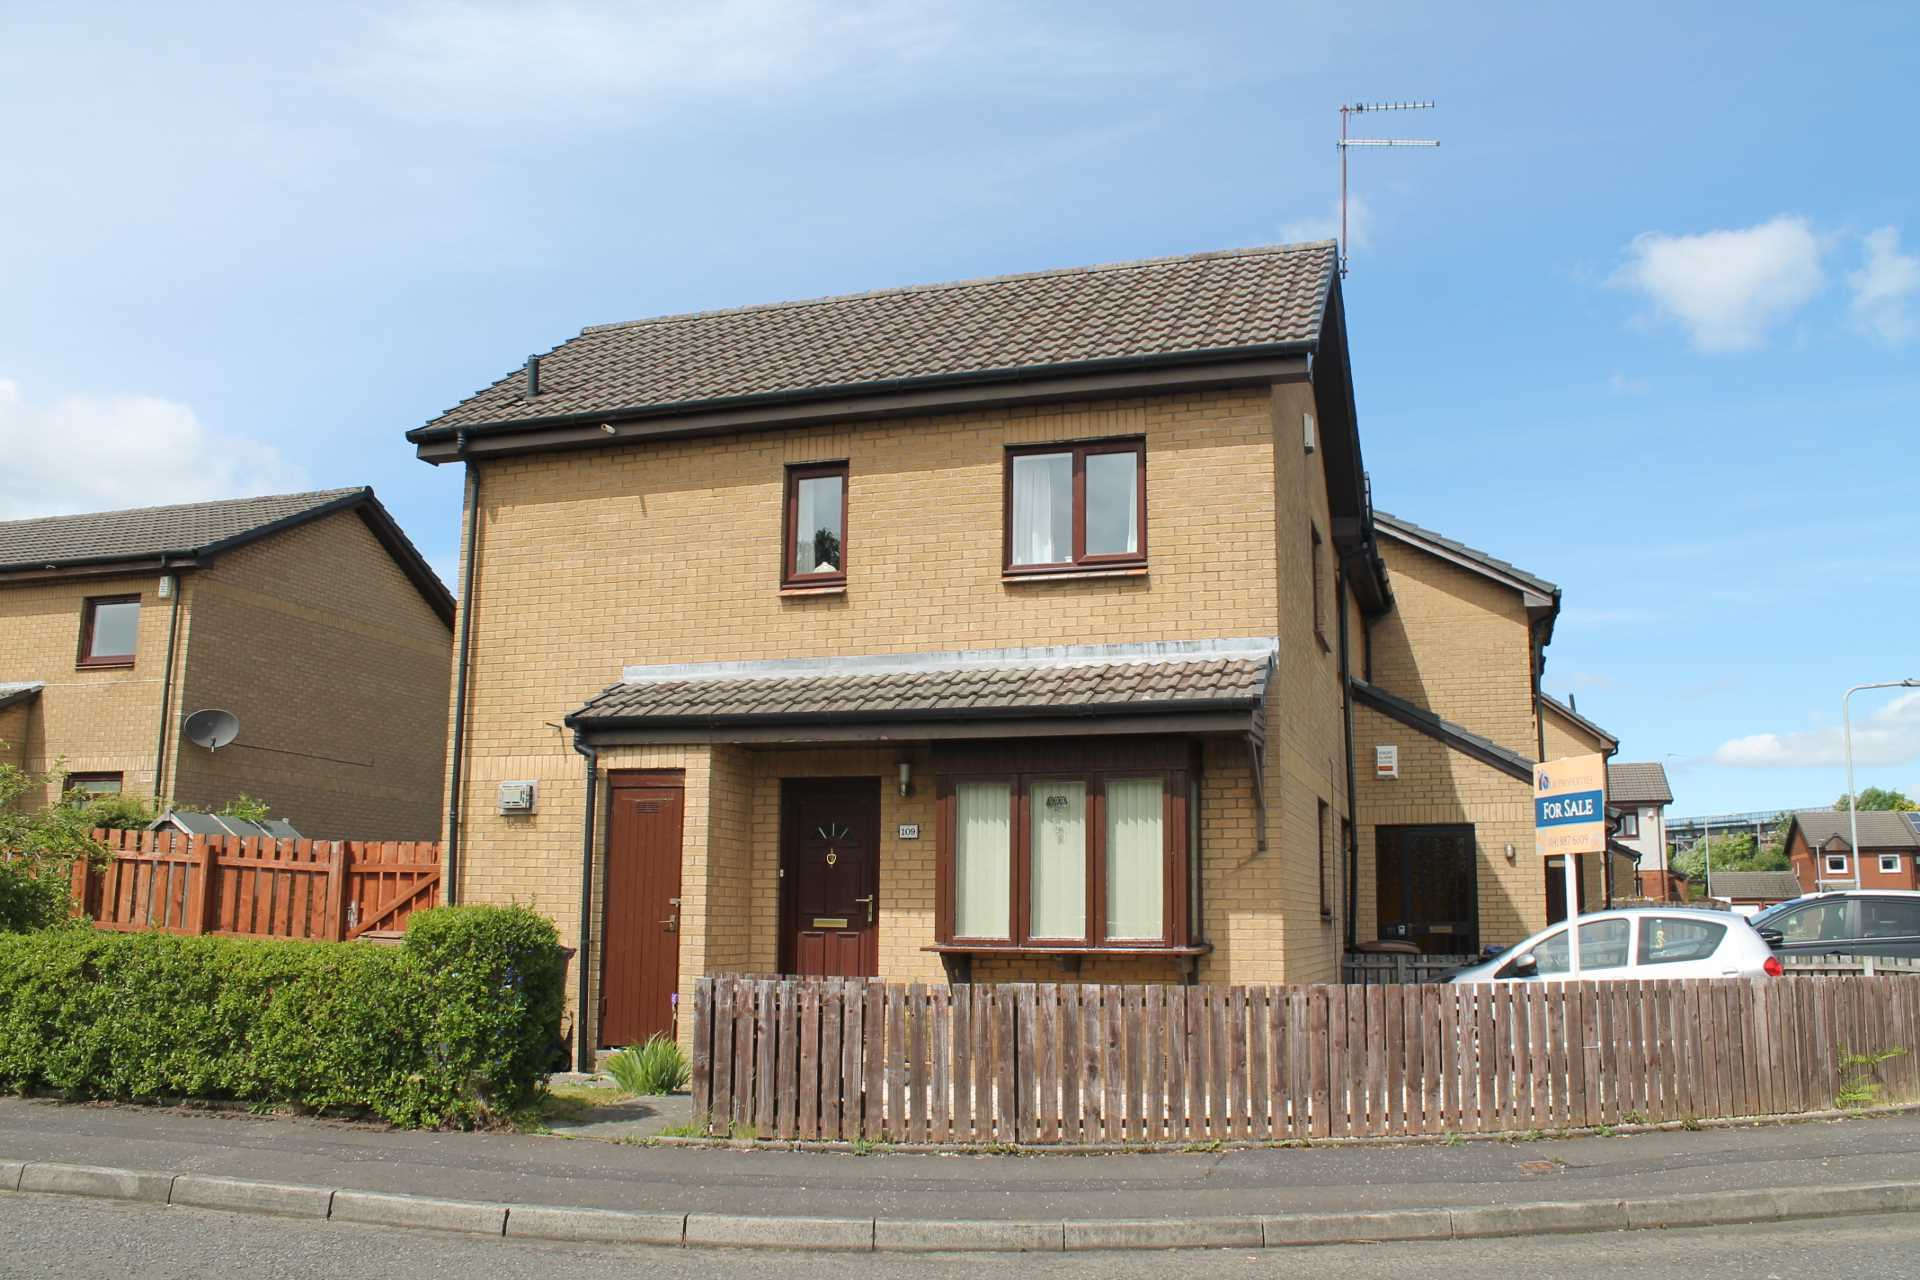 2 bedroom house for sale greenlaw crescent paisley pa1 for Paisley house